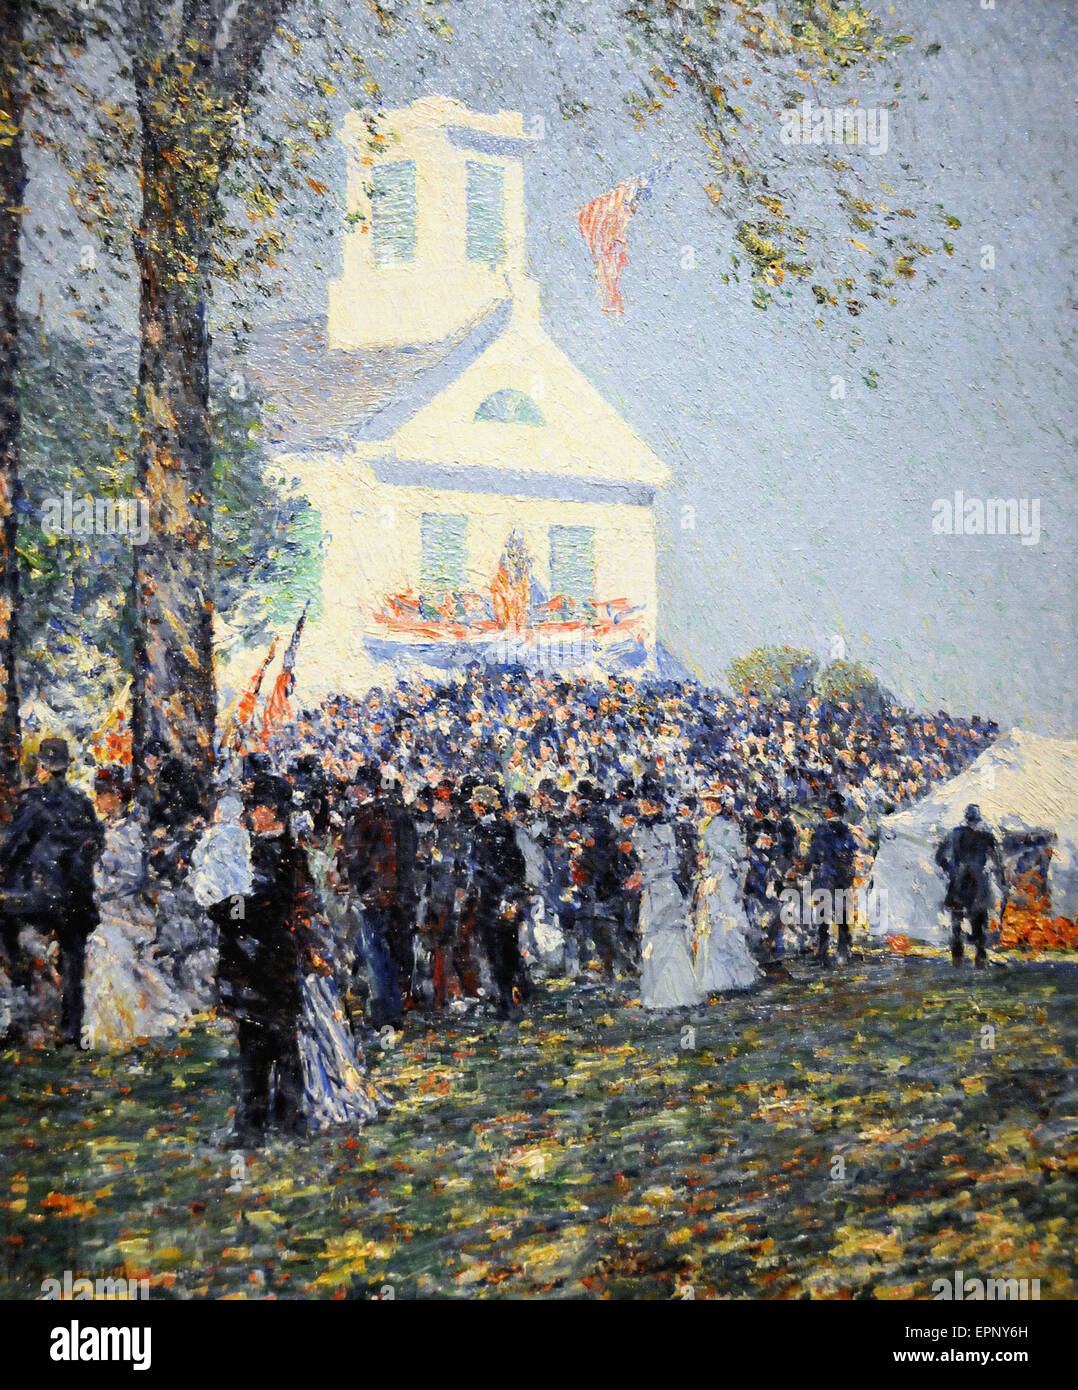 Childe Hassam  Country Fair, New England - Stock Image